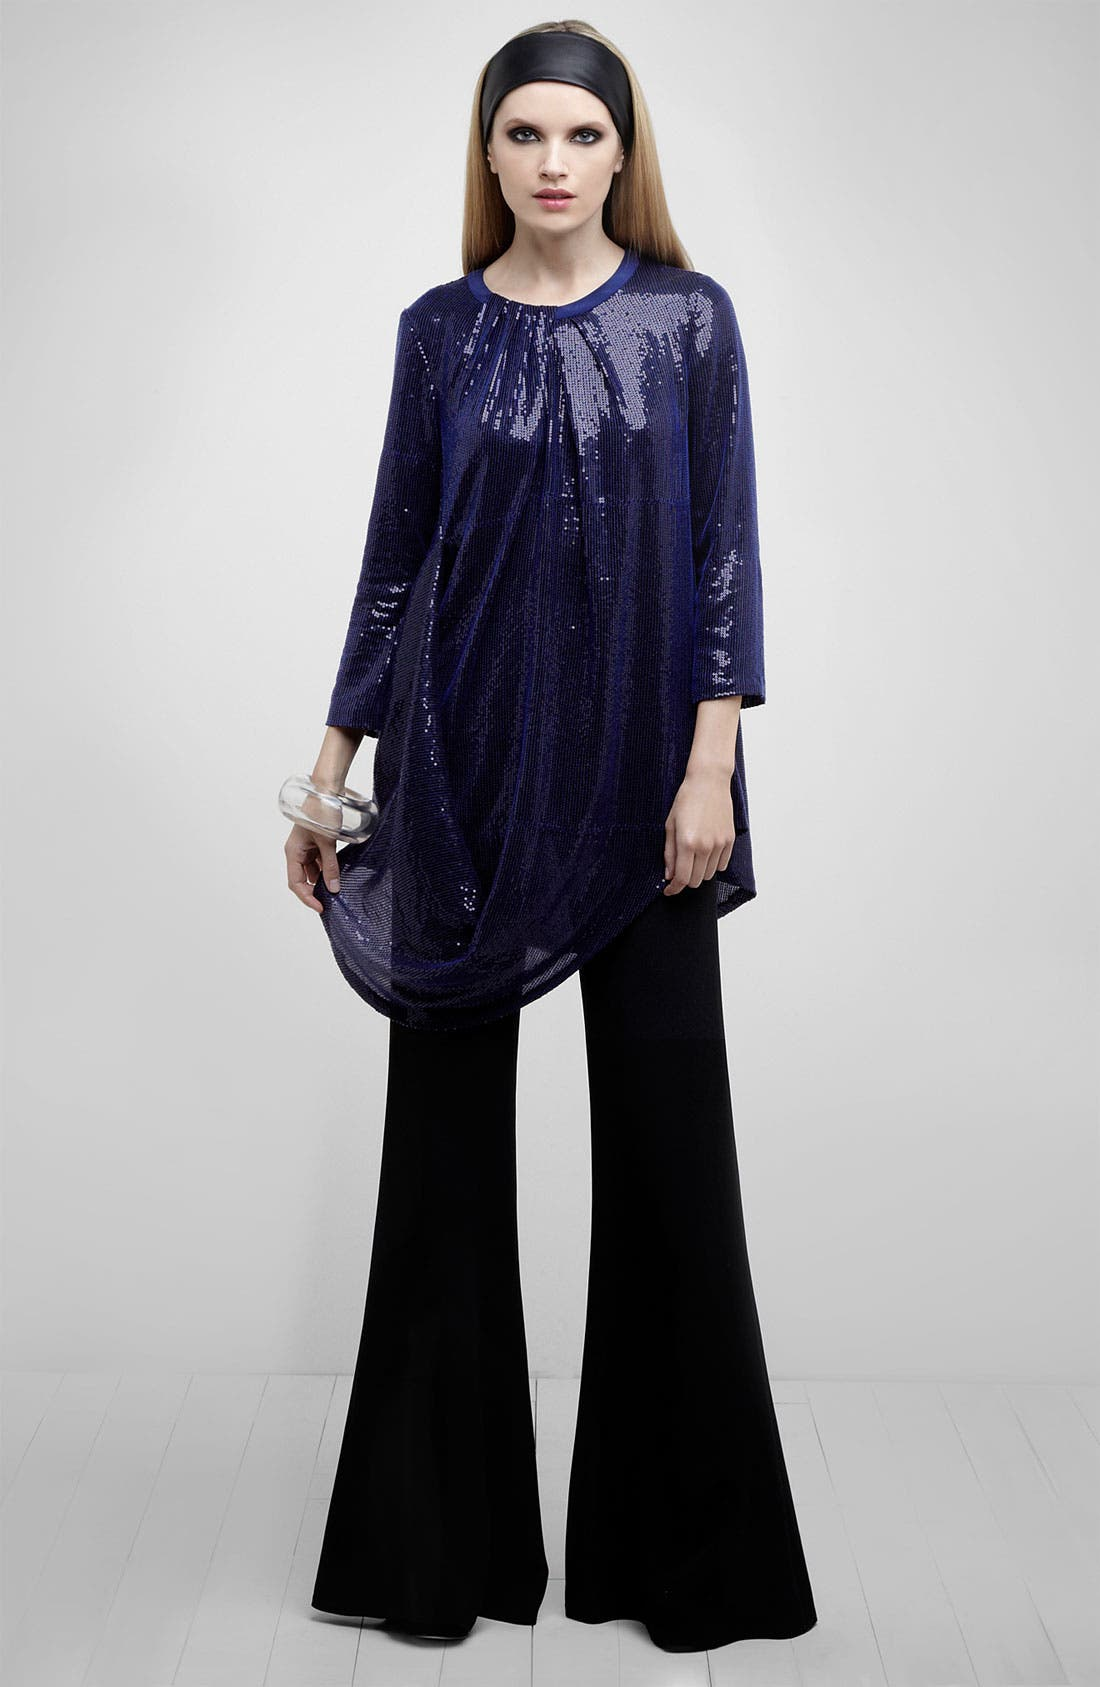 Alternate Image 1 Selected - Lafayette 148 New York Tunic & Bell Bottom Pants